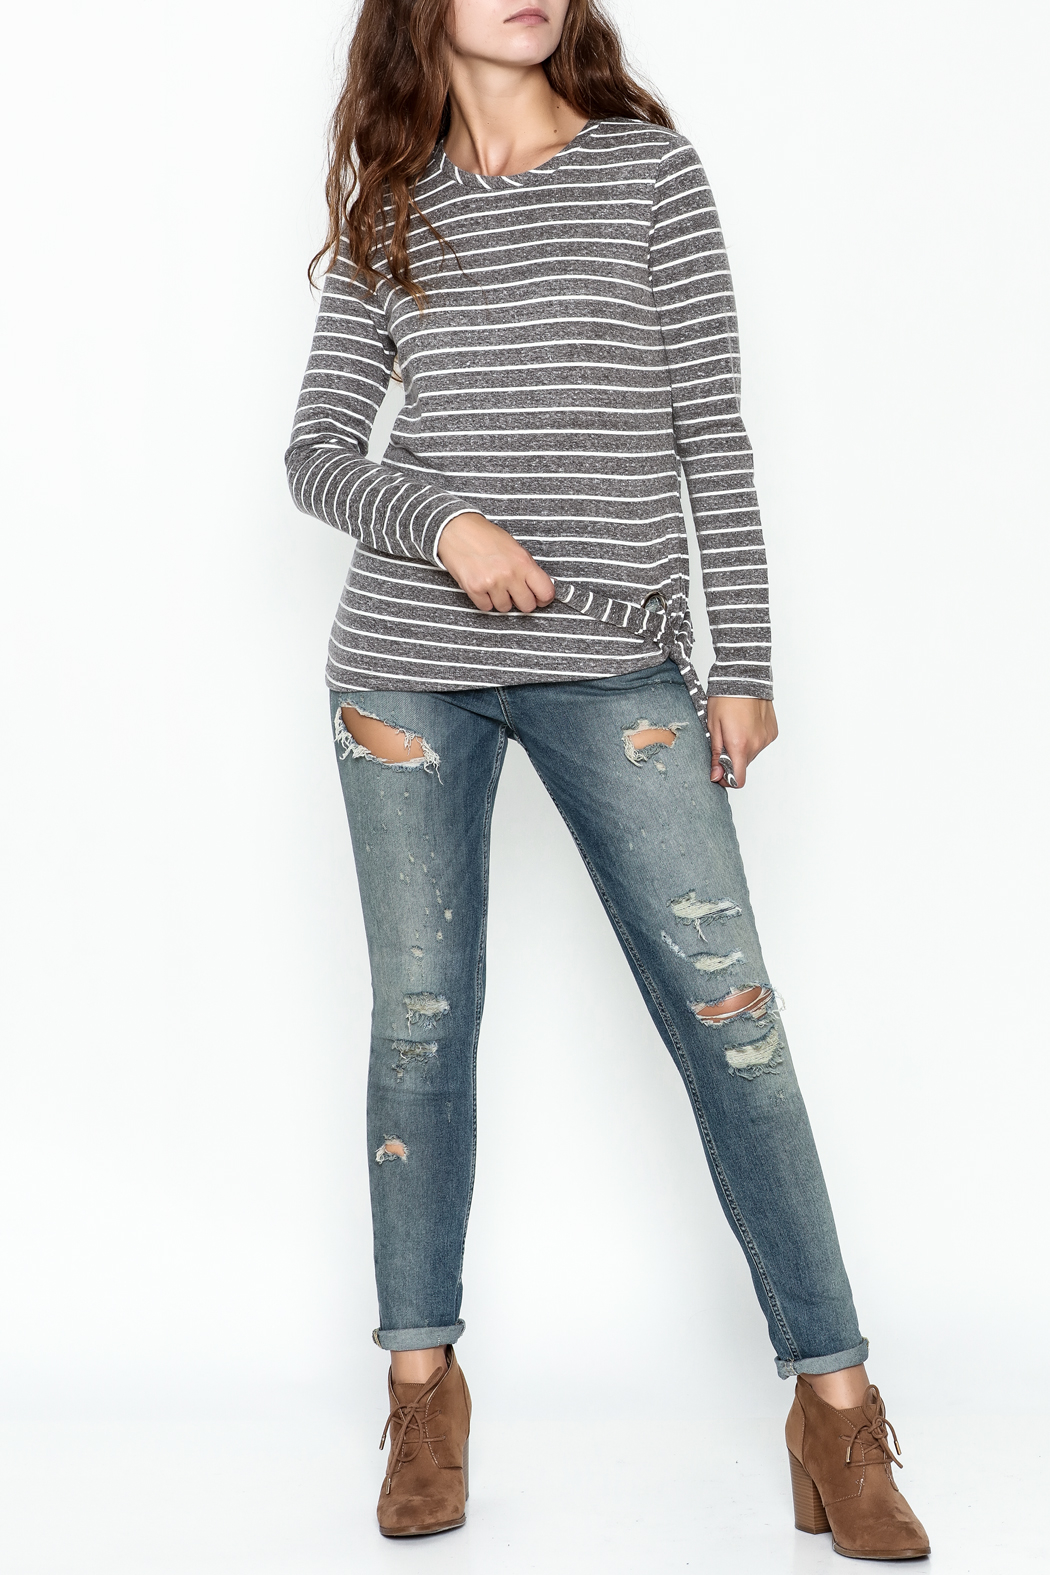 JoyJoy Striped Top - Side Cropped Image